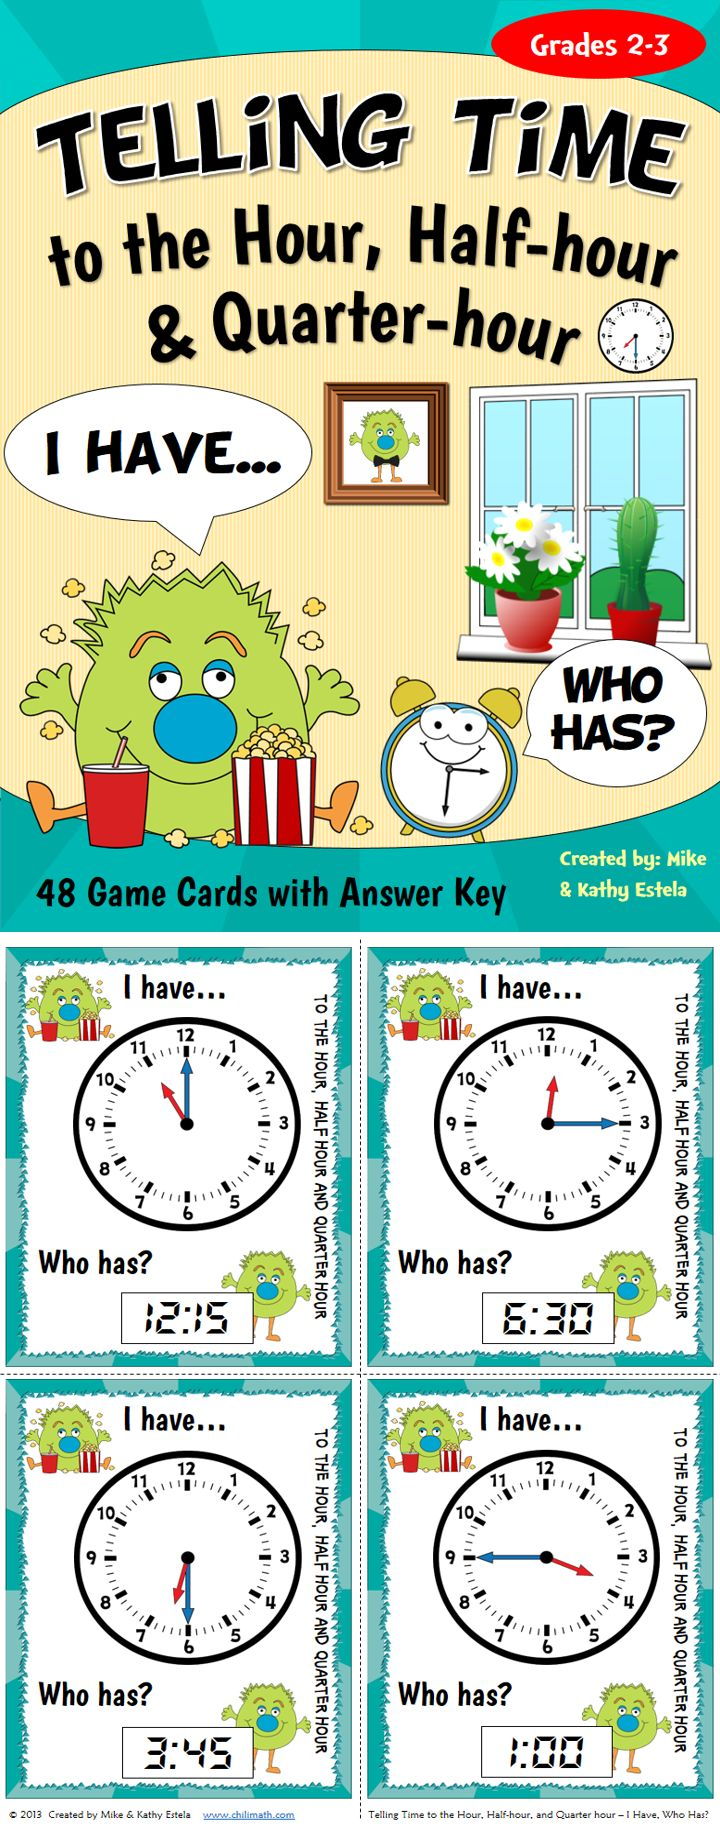 19 best related facts images on Pinterest | Second grade, Fact ...